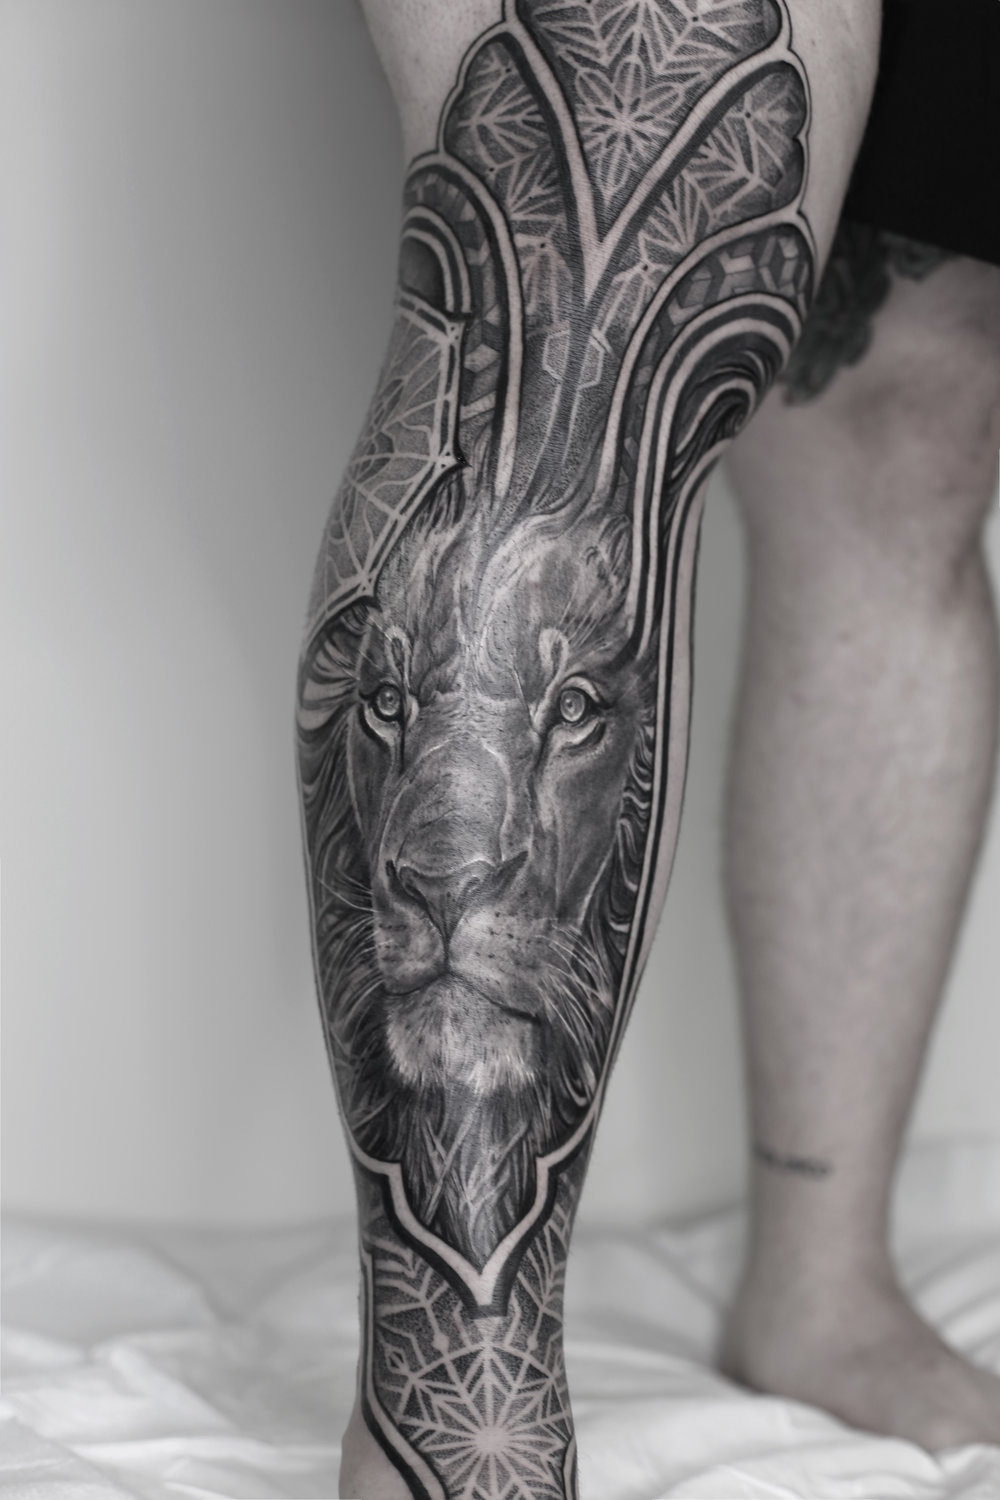 lion ejay tattoo singleton tattoo trinity groves leg sleeve .jpg